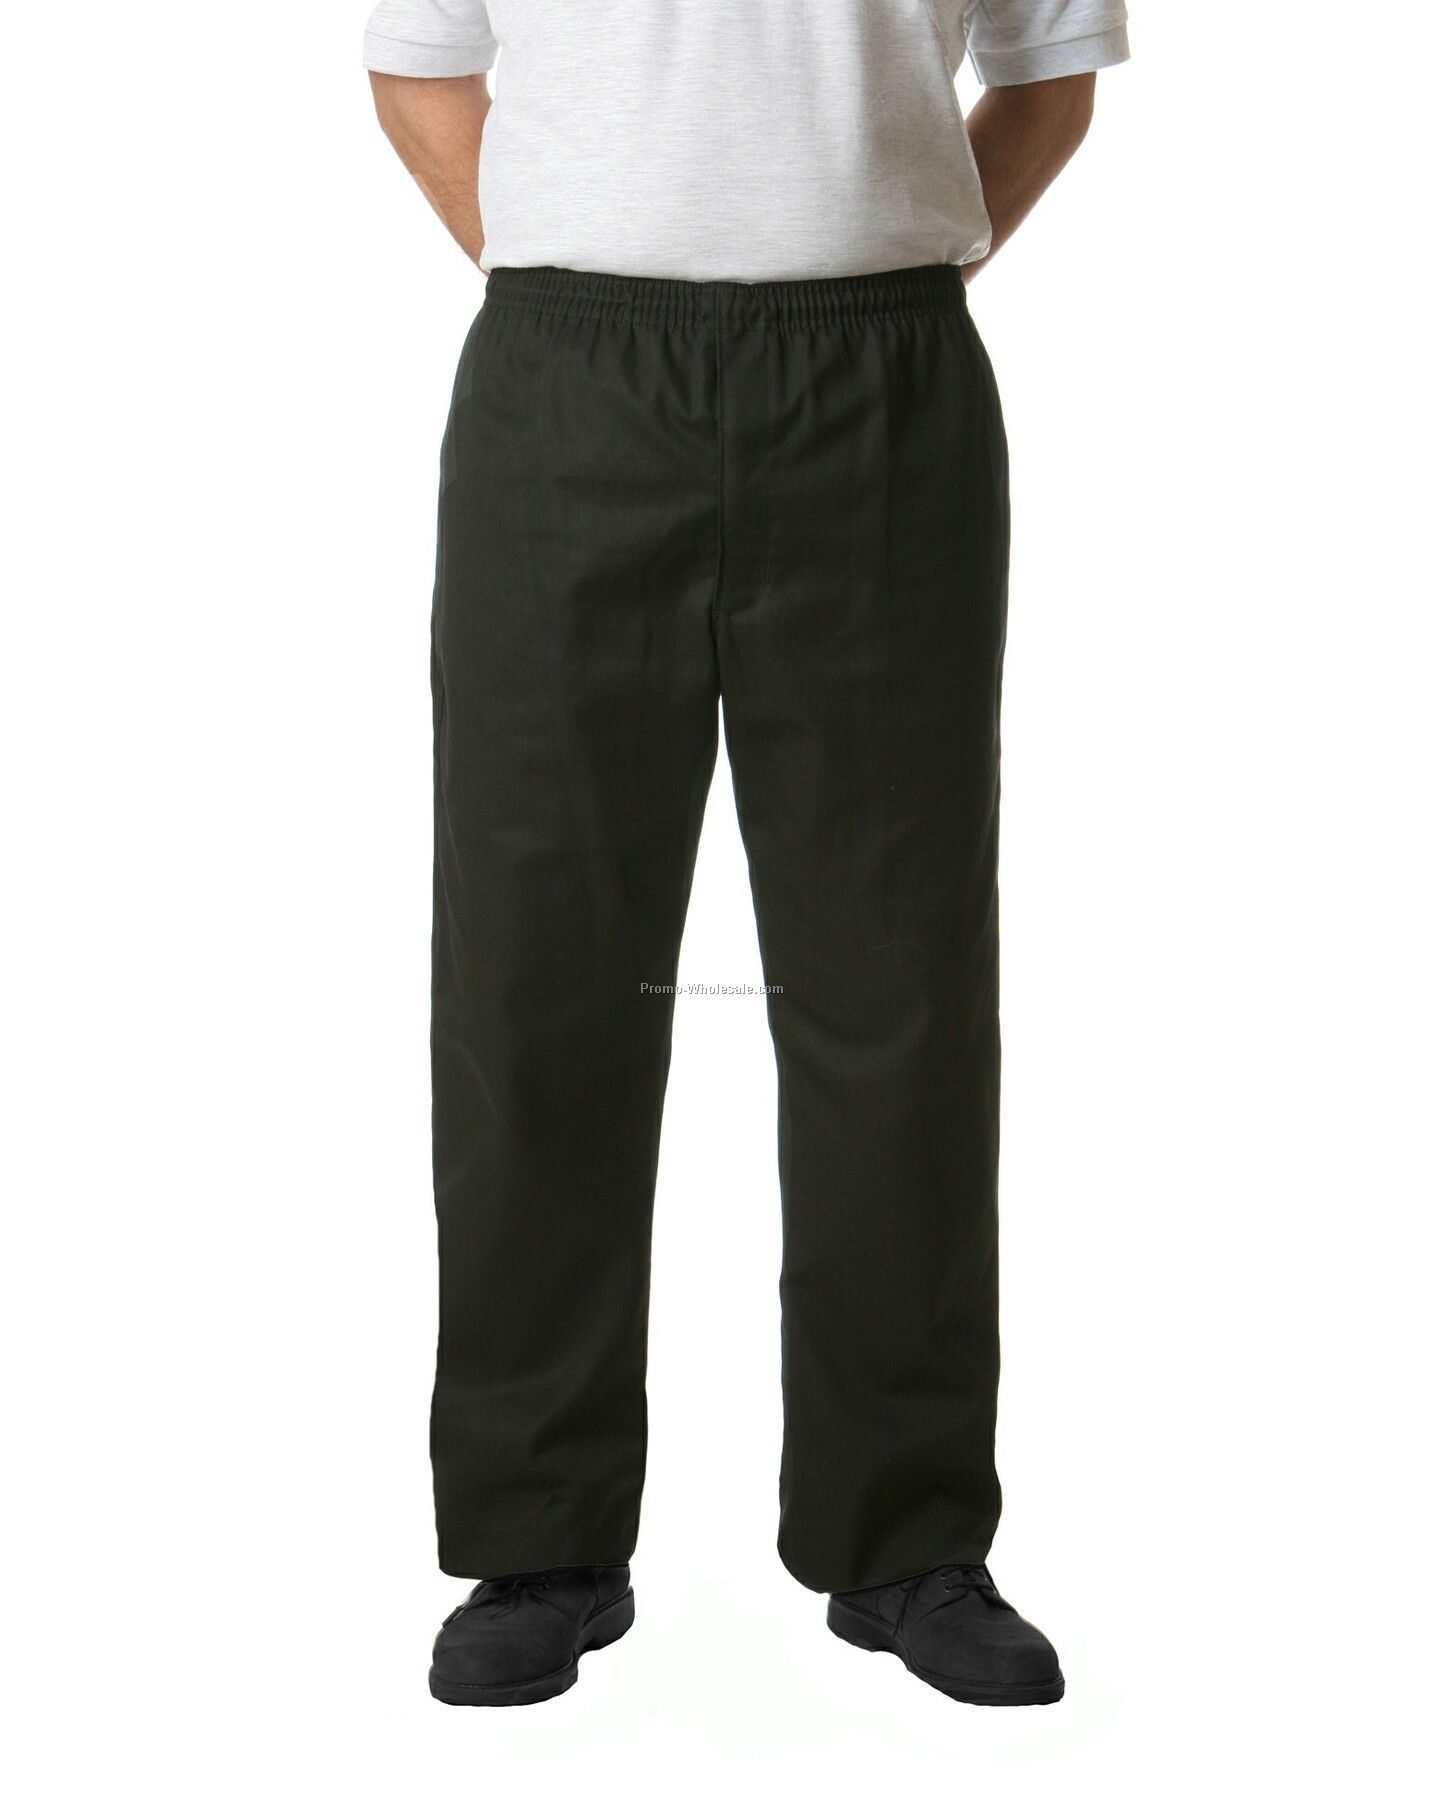 Chef Baggies Pants (Large/ White)